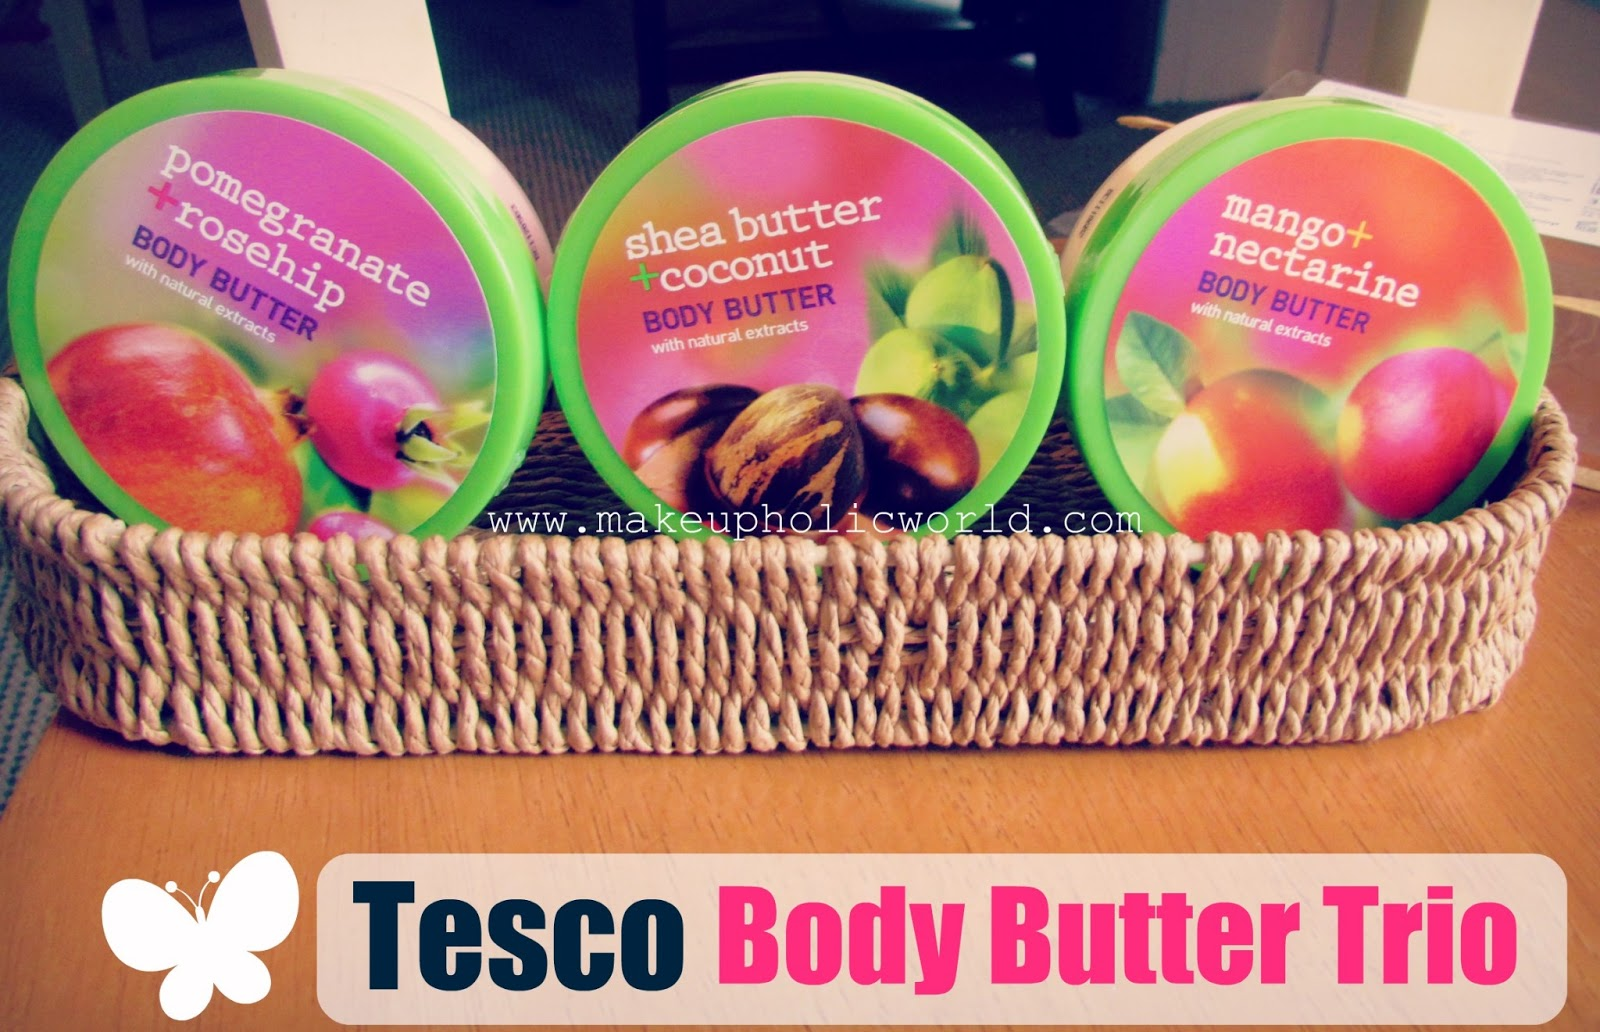 Tesco Extracts Body Butter Trio Makeupholic World